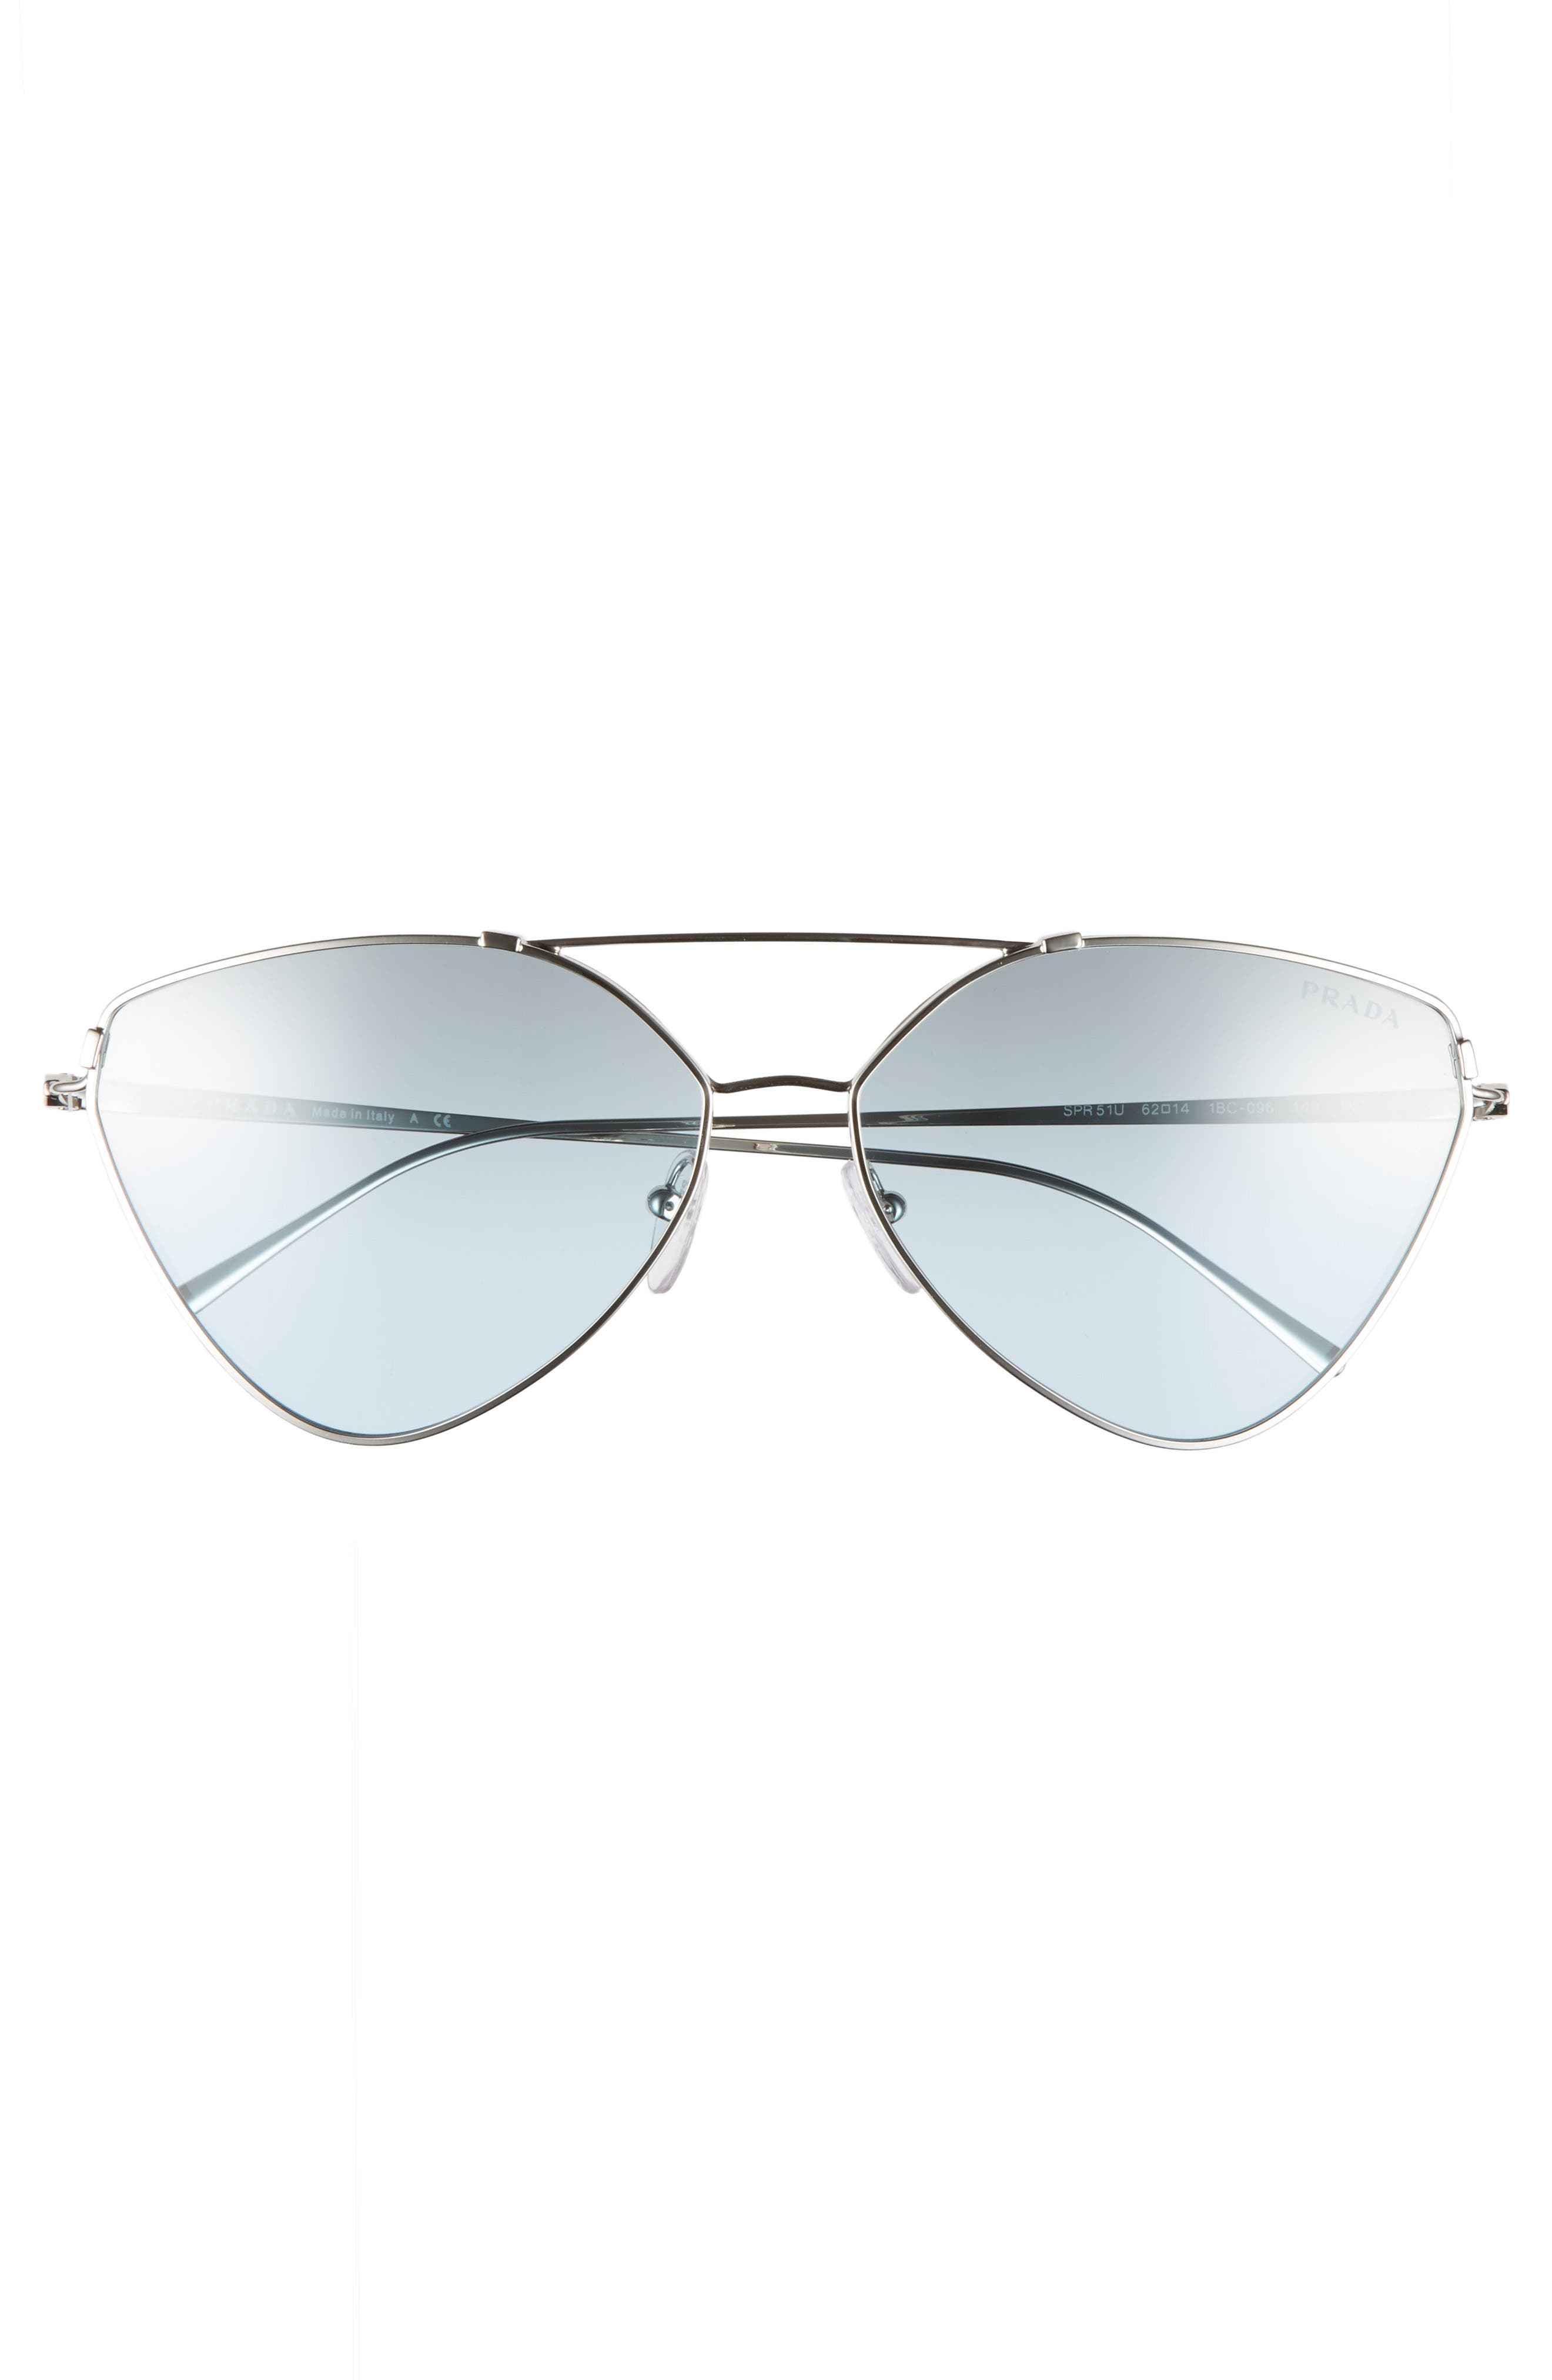 62mm Oversize Aviator Sunglasses,                             Alternate thumbnail 3, color,                             Silver